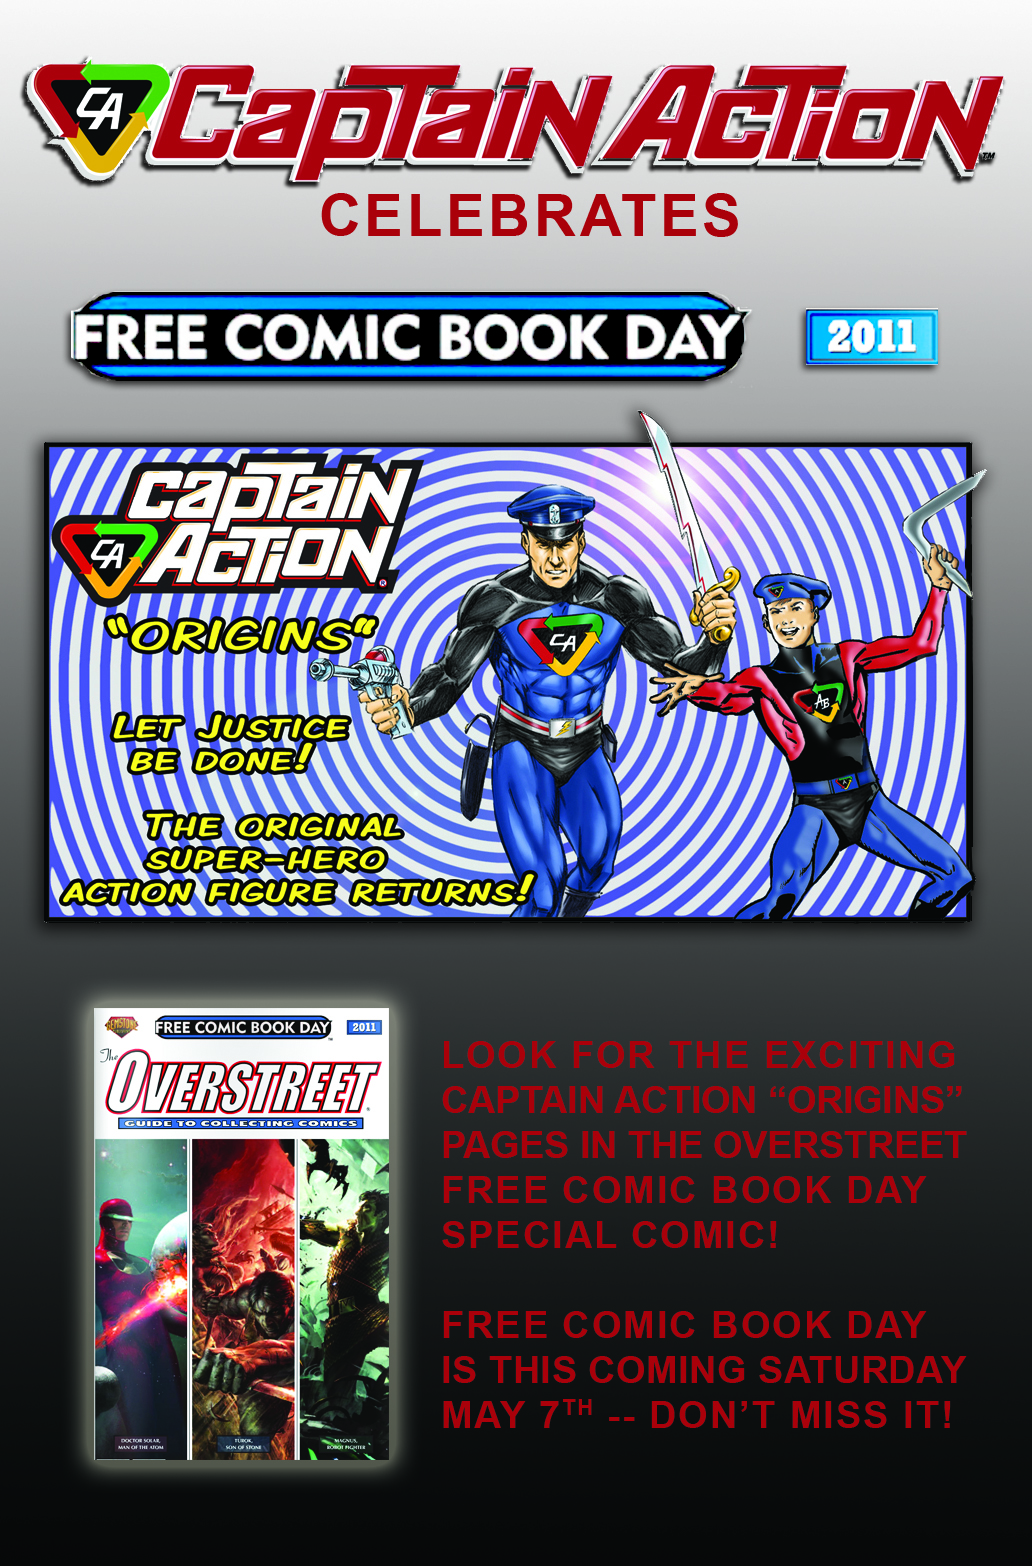 Captain Action Celebrates Free Comic Book Day 5/07/11